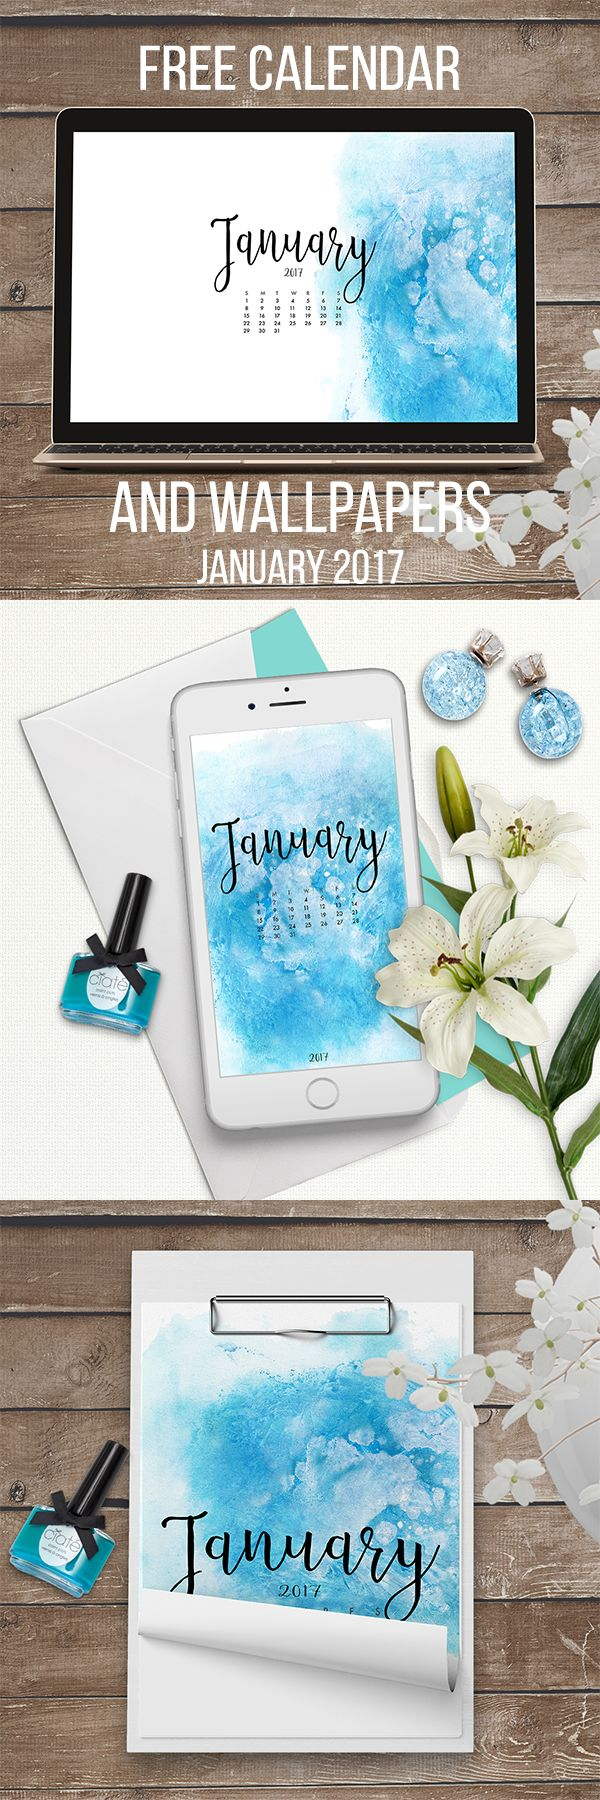 January 2017 Free Calendar and Wallpapers